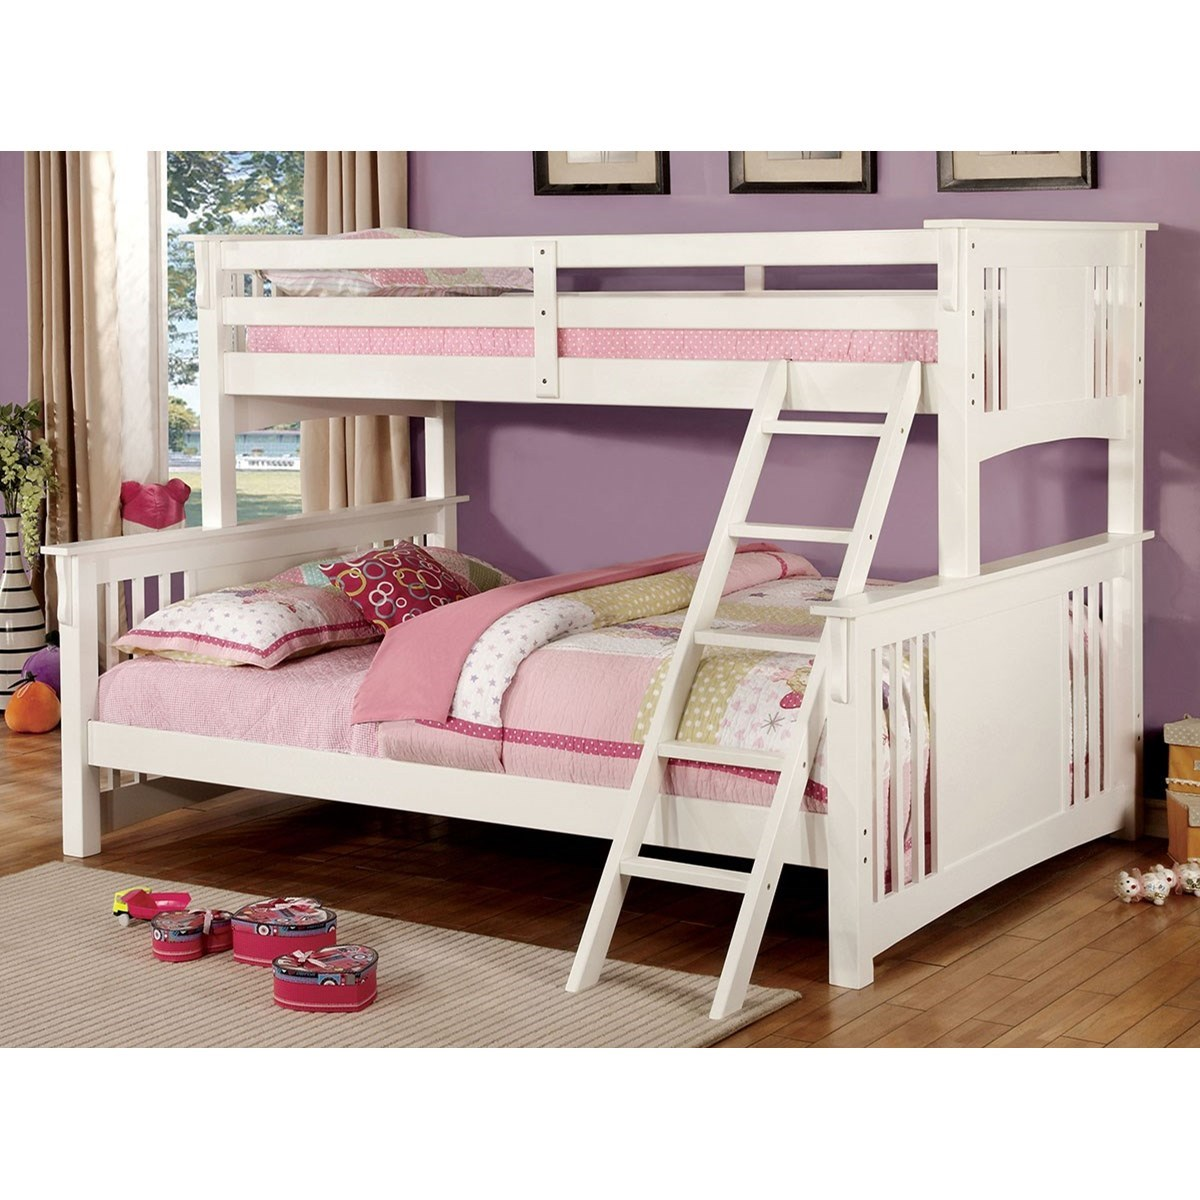 Picture of: Furniture Of America Foa Spring Creek Cm Bk604wh Bed Extra Large Twin Over Queen Size Youth Bedroom Bunk Bed Del Sol Furniture Bunk Beds